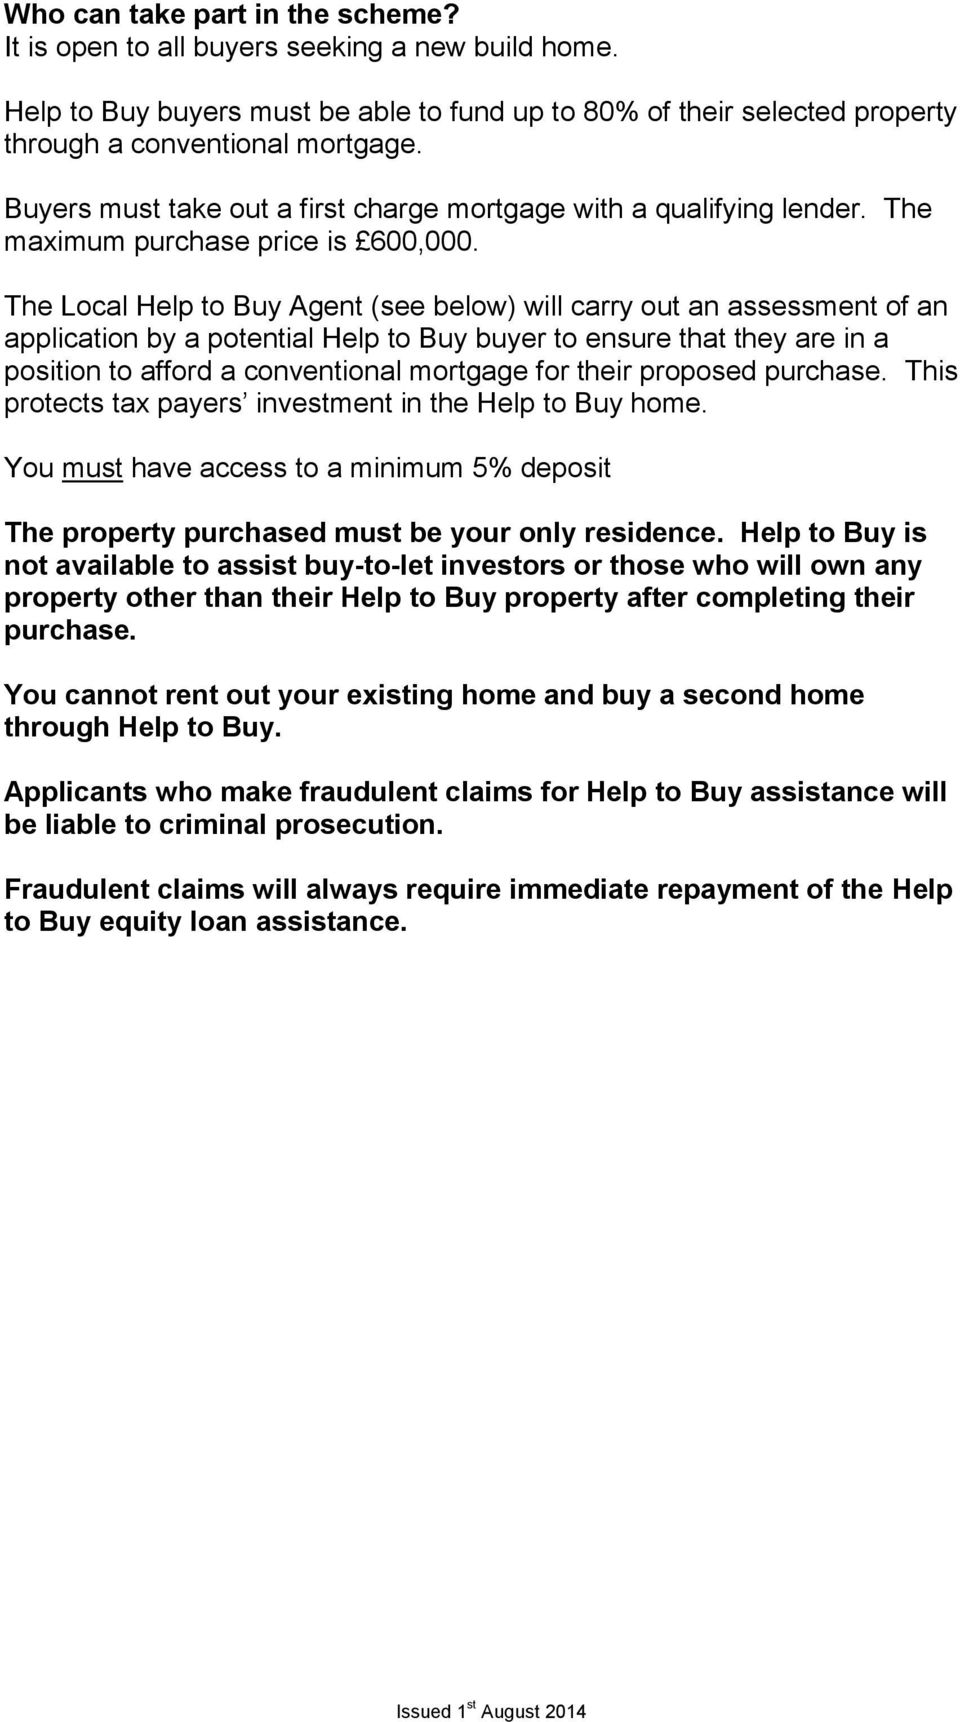 The Local Help to Buy Agent (see below) will carry out an assessment of an application by a potential Help to Buy buyer to ensure that they are in a position to afford a conventional mortgage for